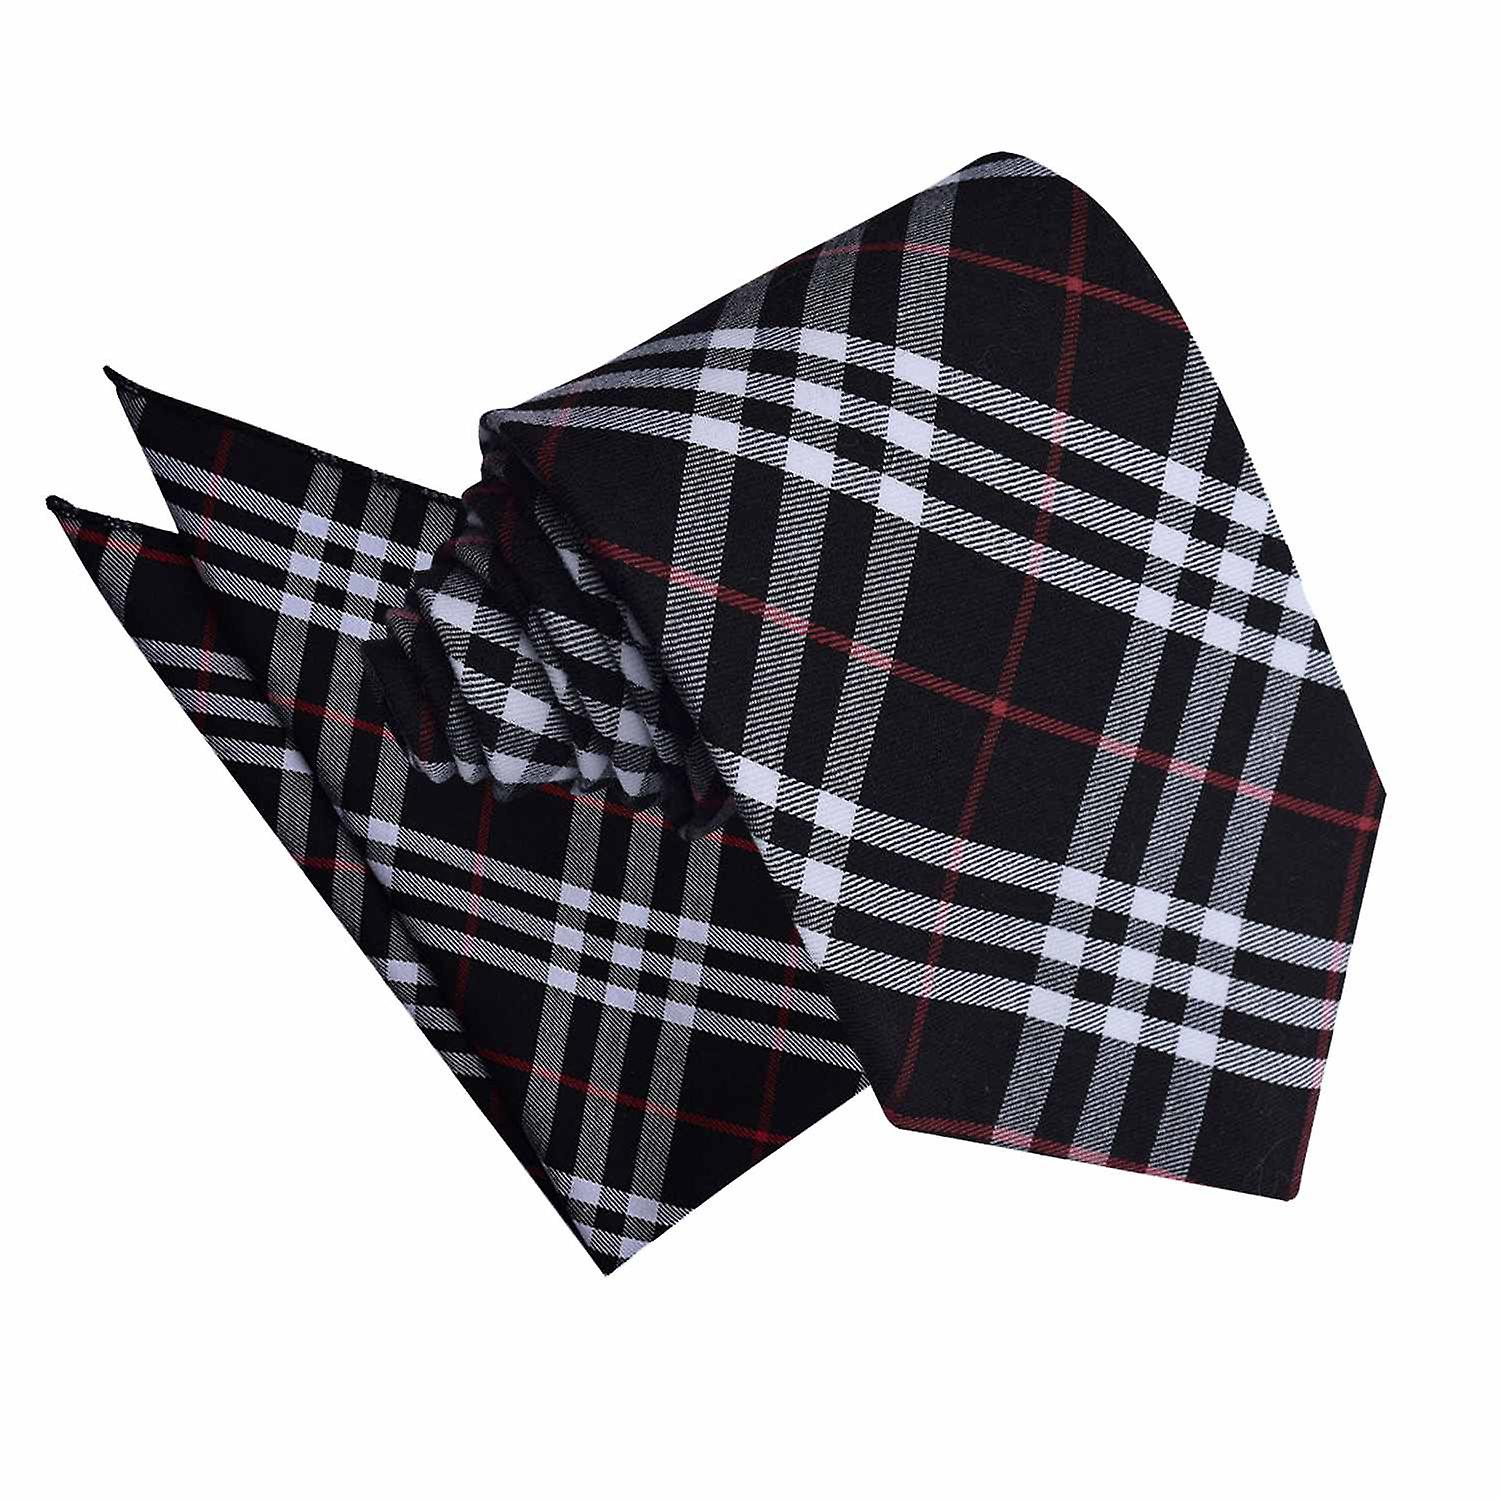 Black & White with Red Tartan Tie 2 pc. Set